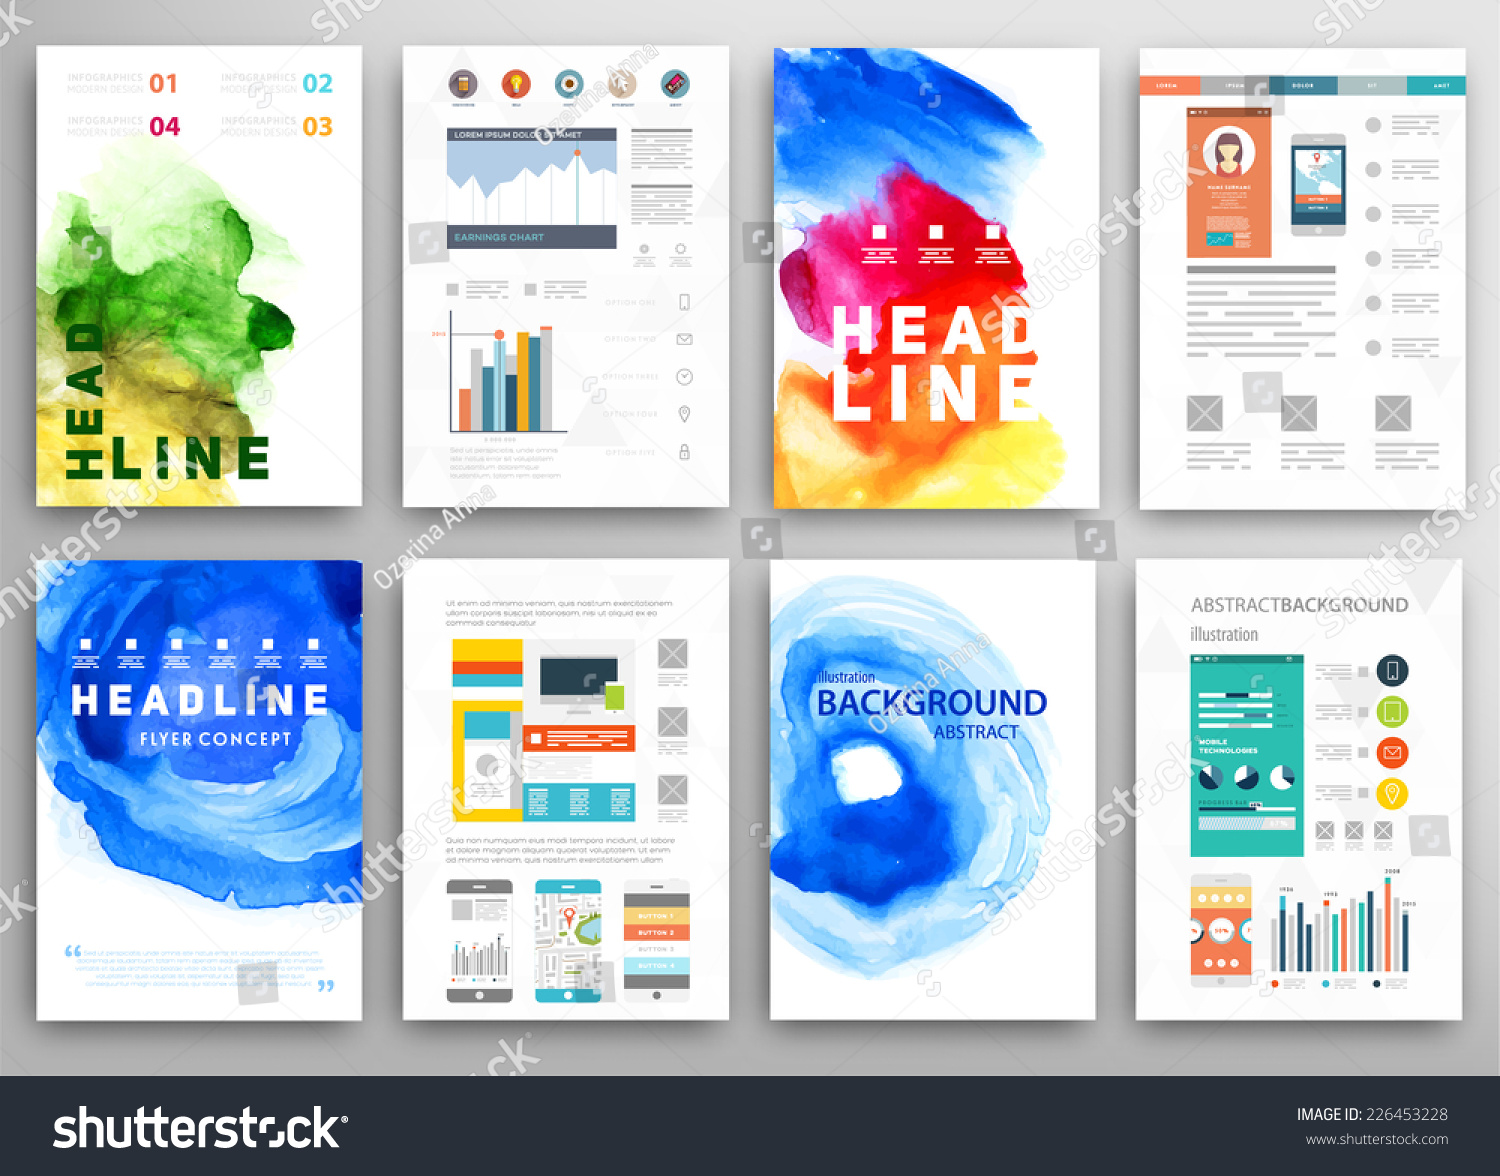 Set vector poster templates watercolor paint stock vector 226453228 set vector poster templates watercolor paint stock vector 226453228 shutterstock friedricerecipe Gallery